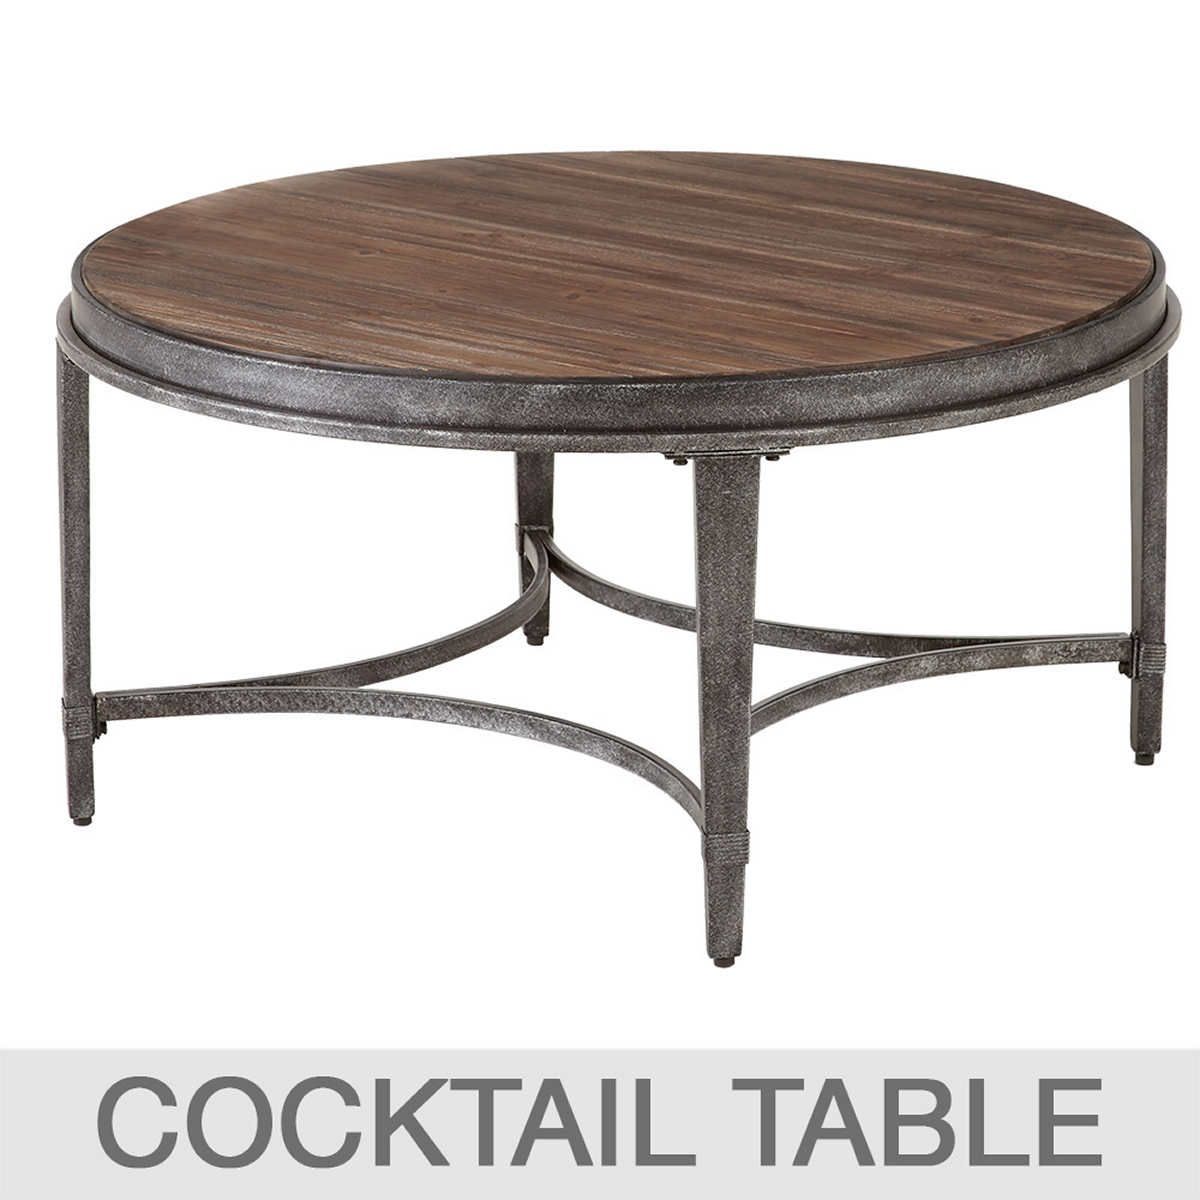 Pin By Jessica Clay On Coffee Tables Occasional Table Coffee Table Table [ 1200 x 1200 Pixel ]